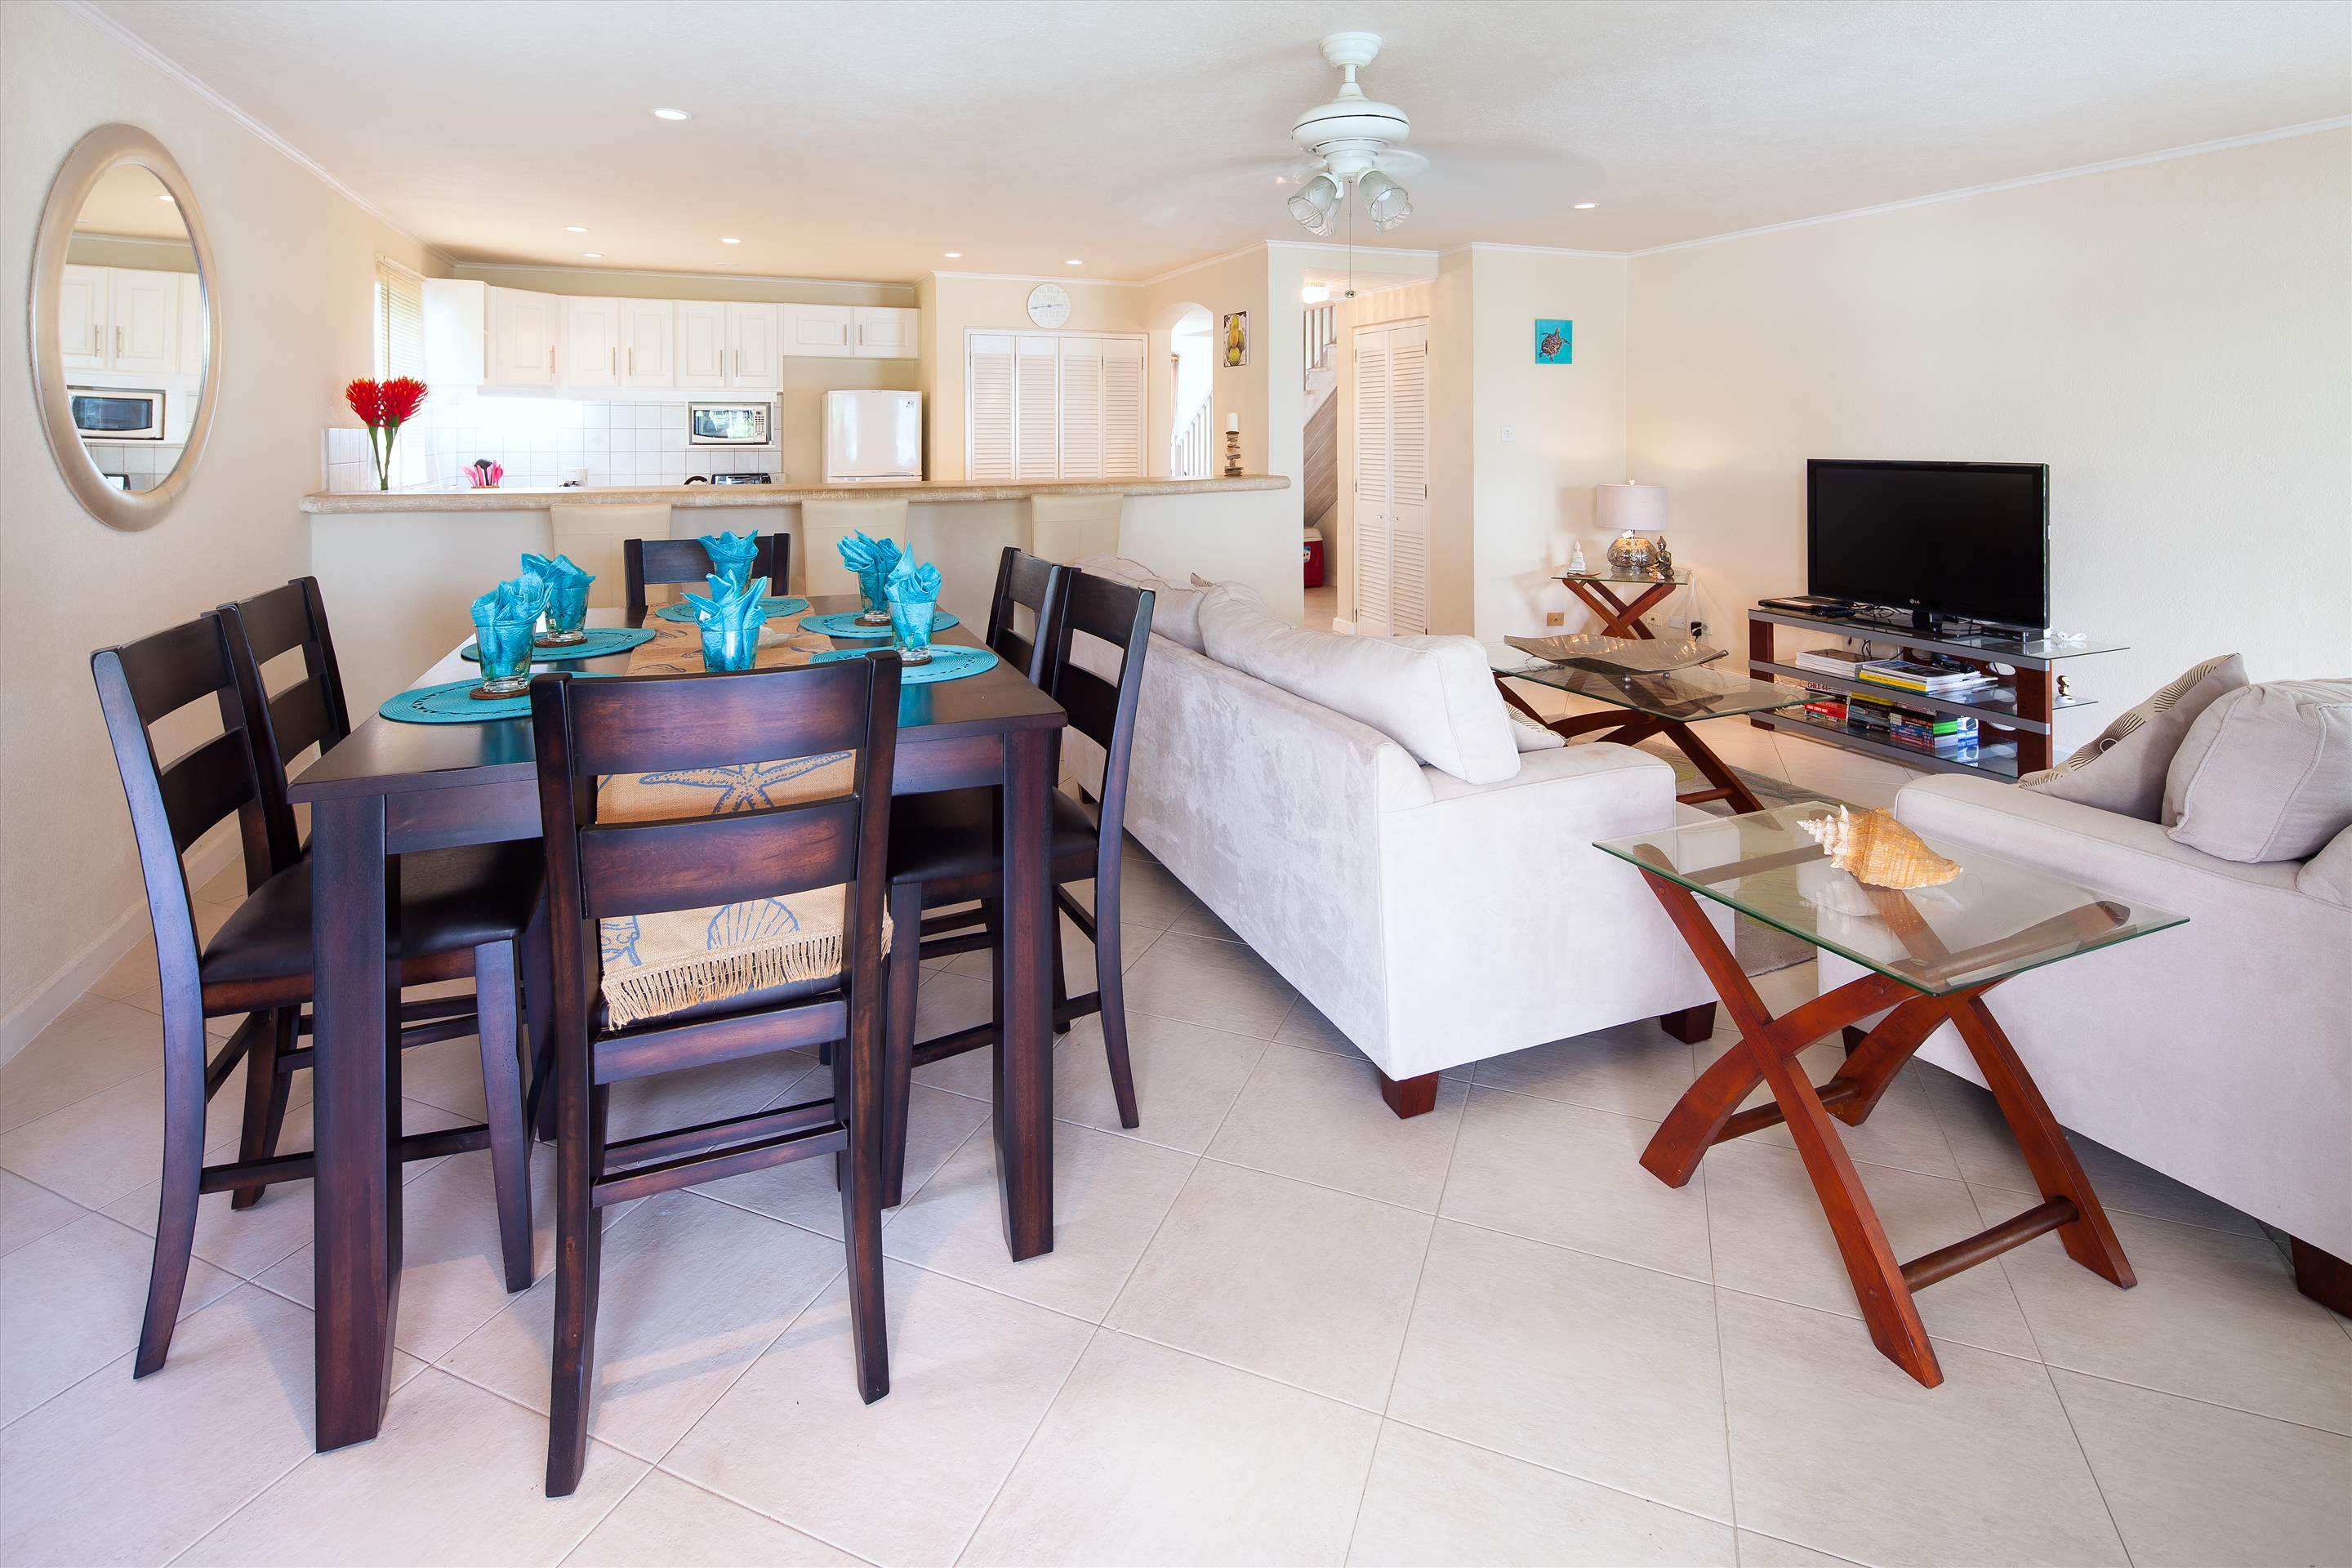 Margate Gardens 4, 2 bedroom, 2 bedroom apartment in St. Lawrence Gap & South Coast, Barbados Photo #6